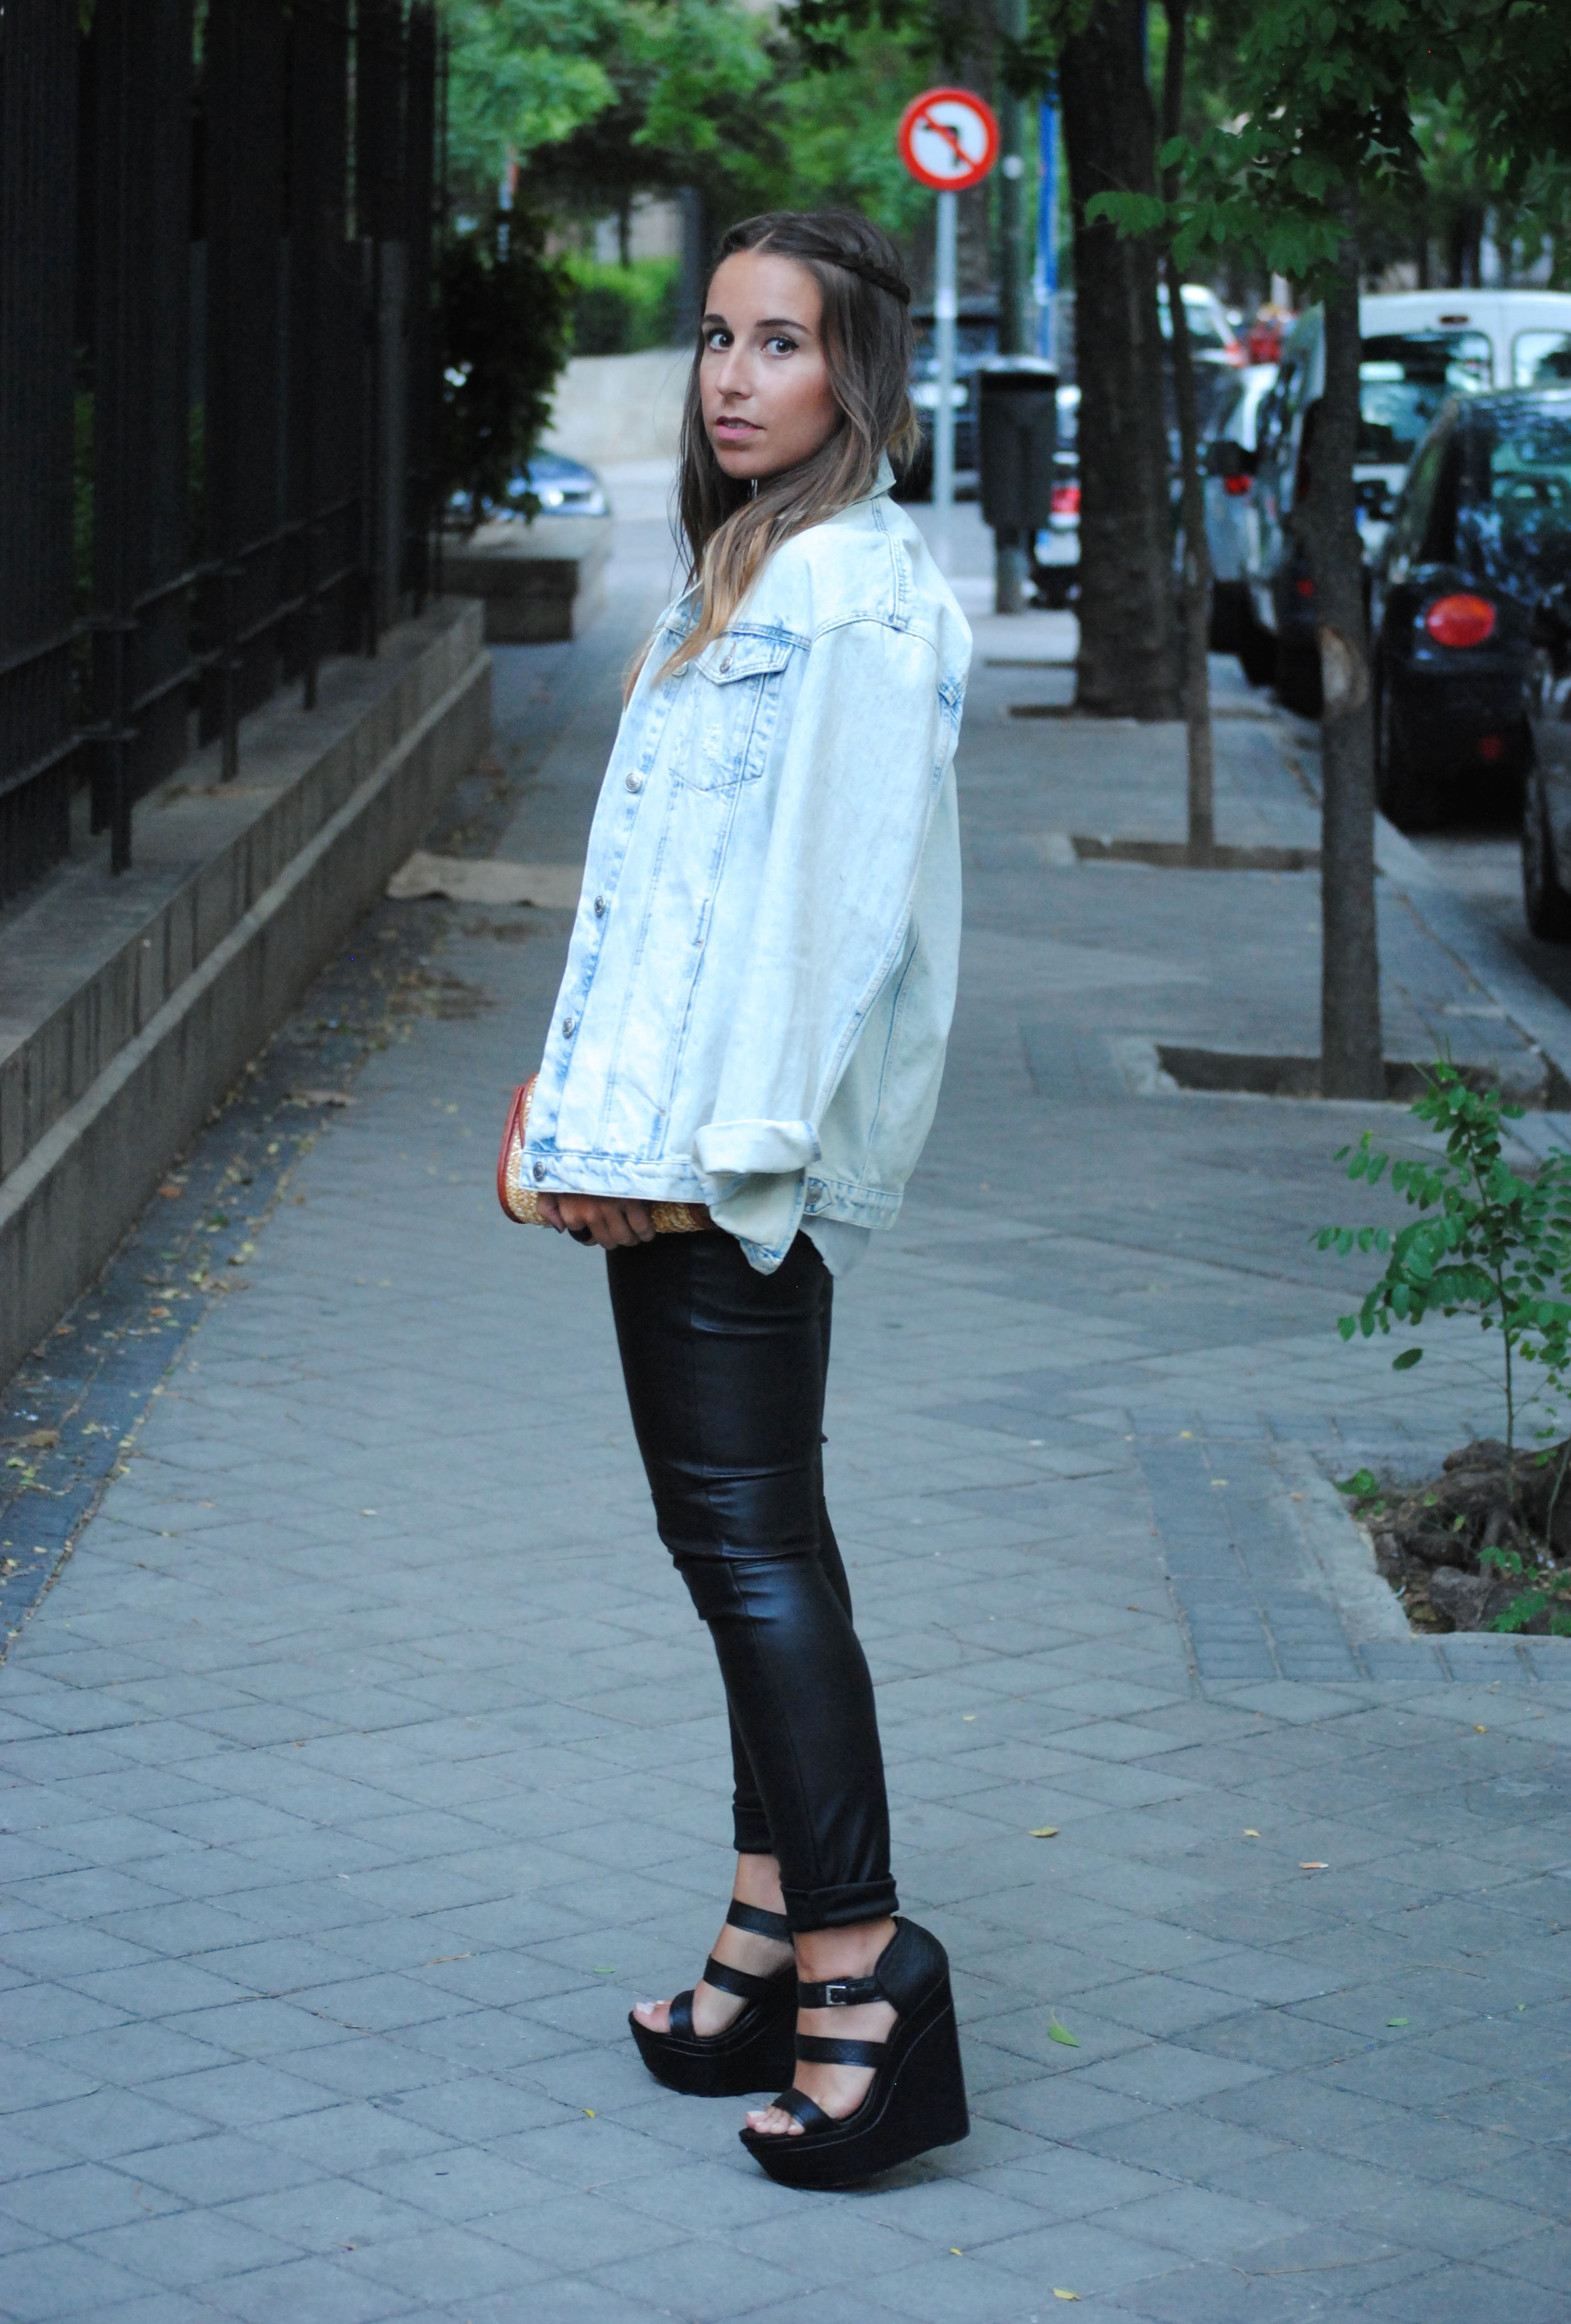 denim and leather look